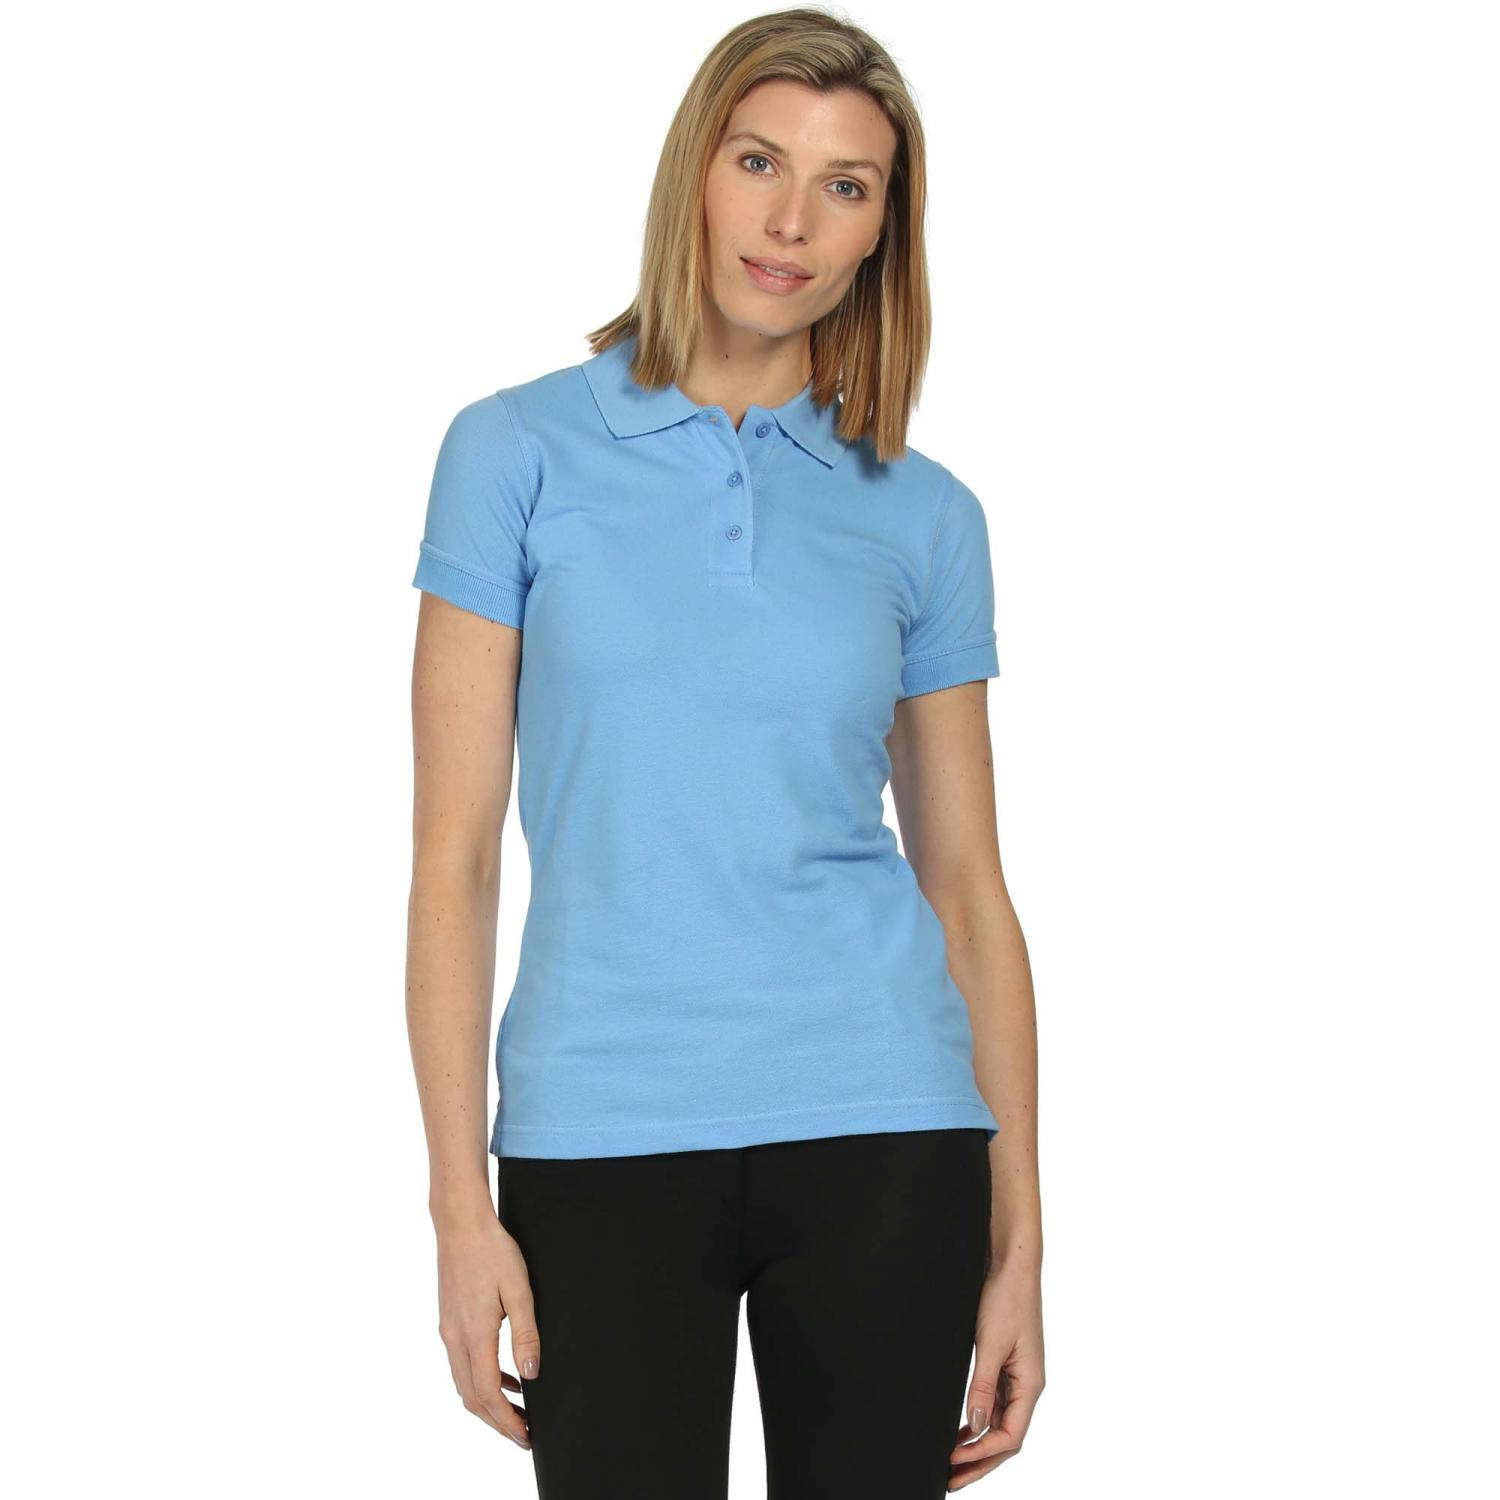 Womens Cotton Polo Shirt Blueskies